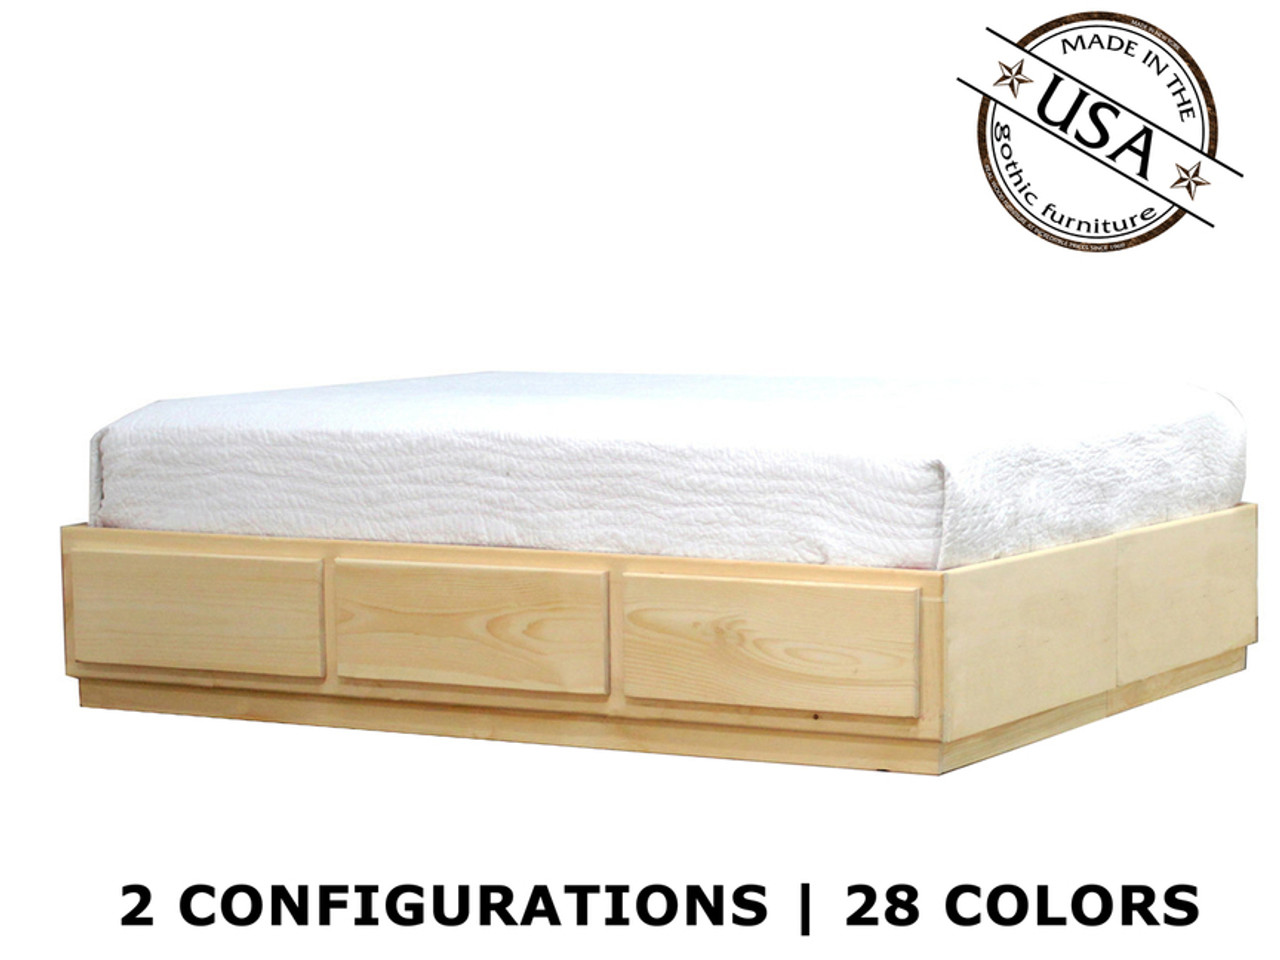 Queen Captains Bed 3 6 Drawers Pine Wood Gothic Furniture